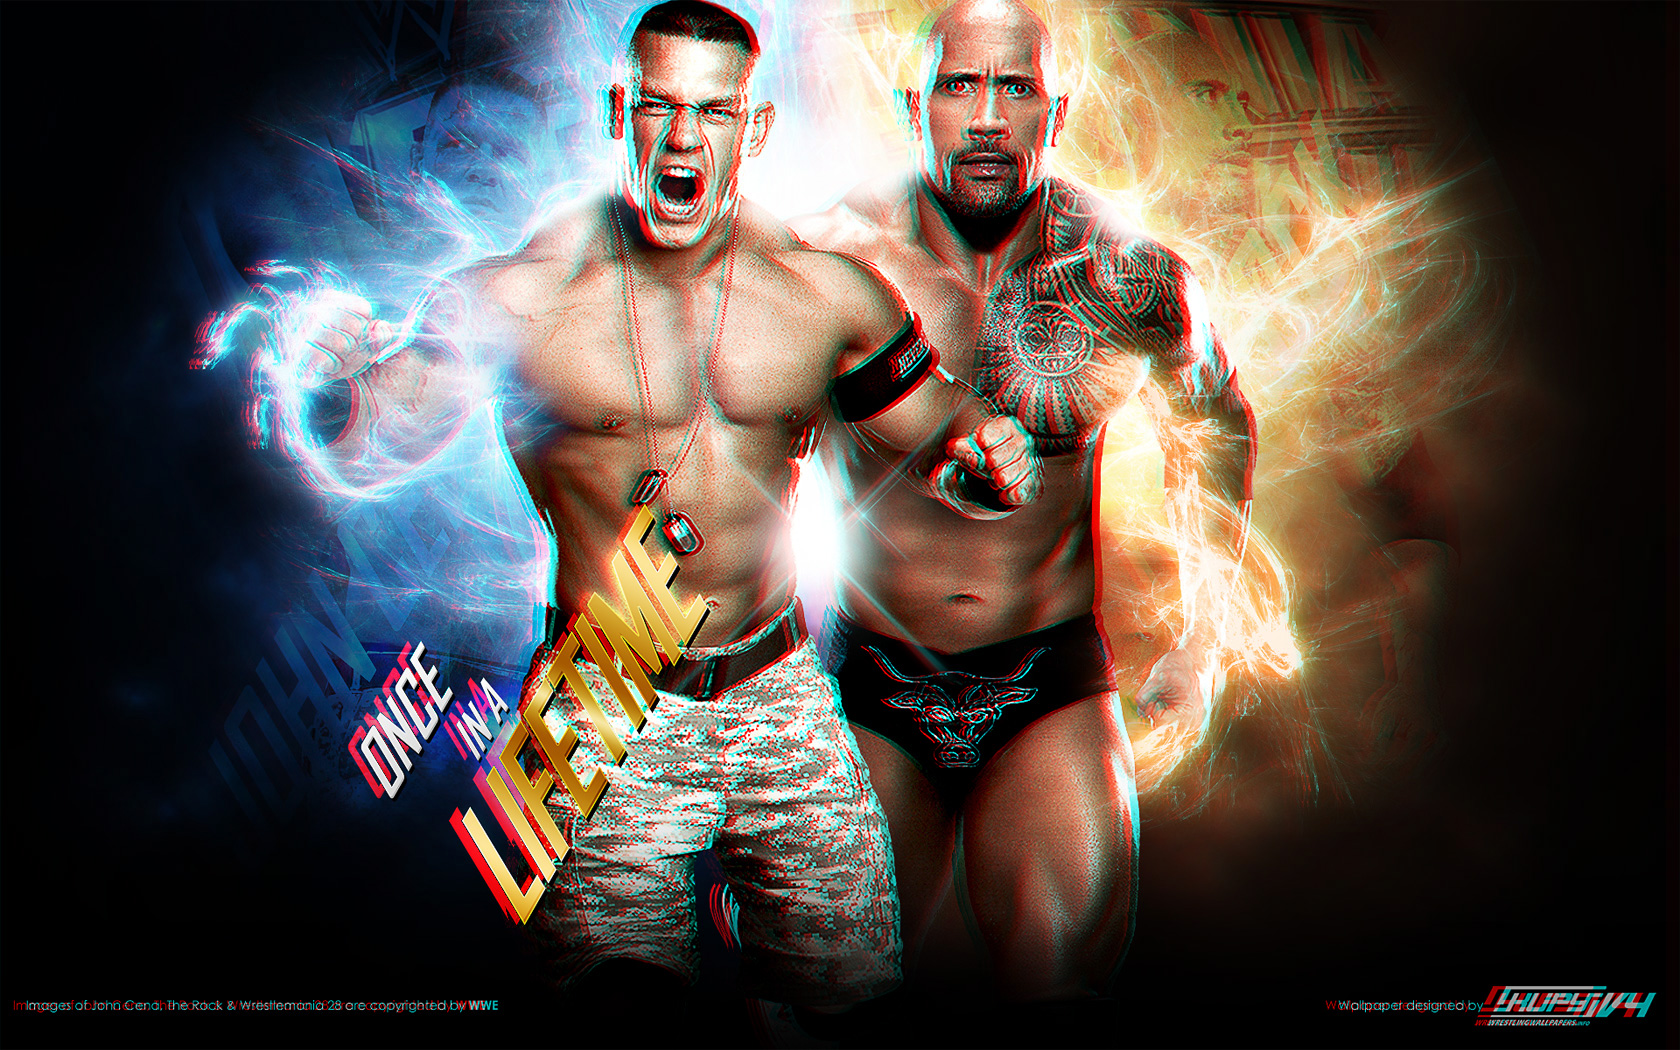 New Road To Wrestlemania 28 John Cena Vs The Rock Once In A